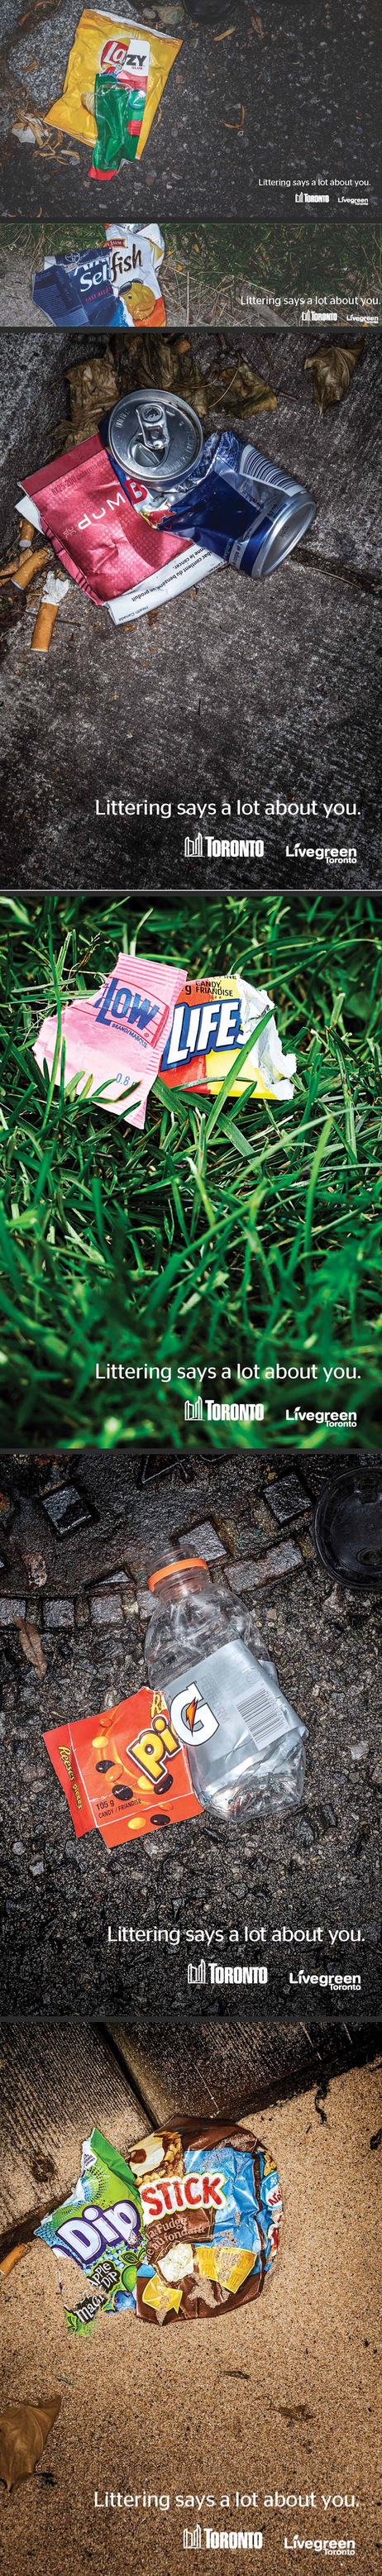 Livegreen Toronto_ Littering says a lot about you Funny